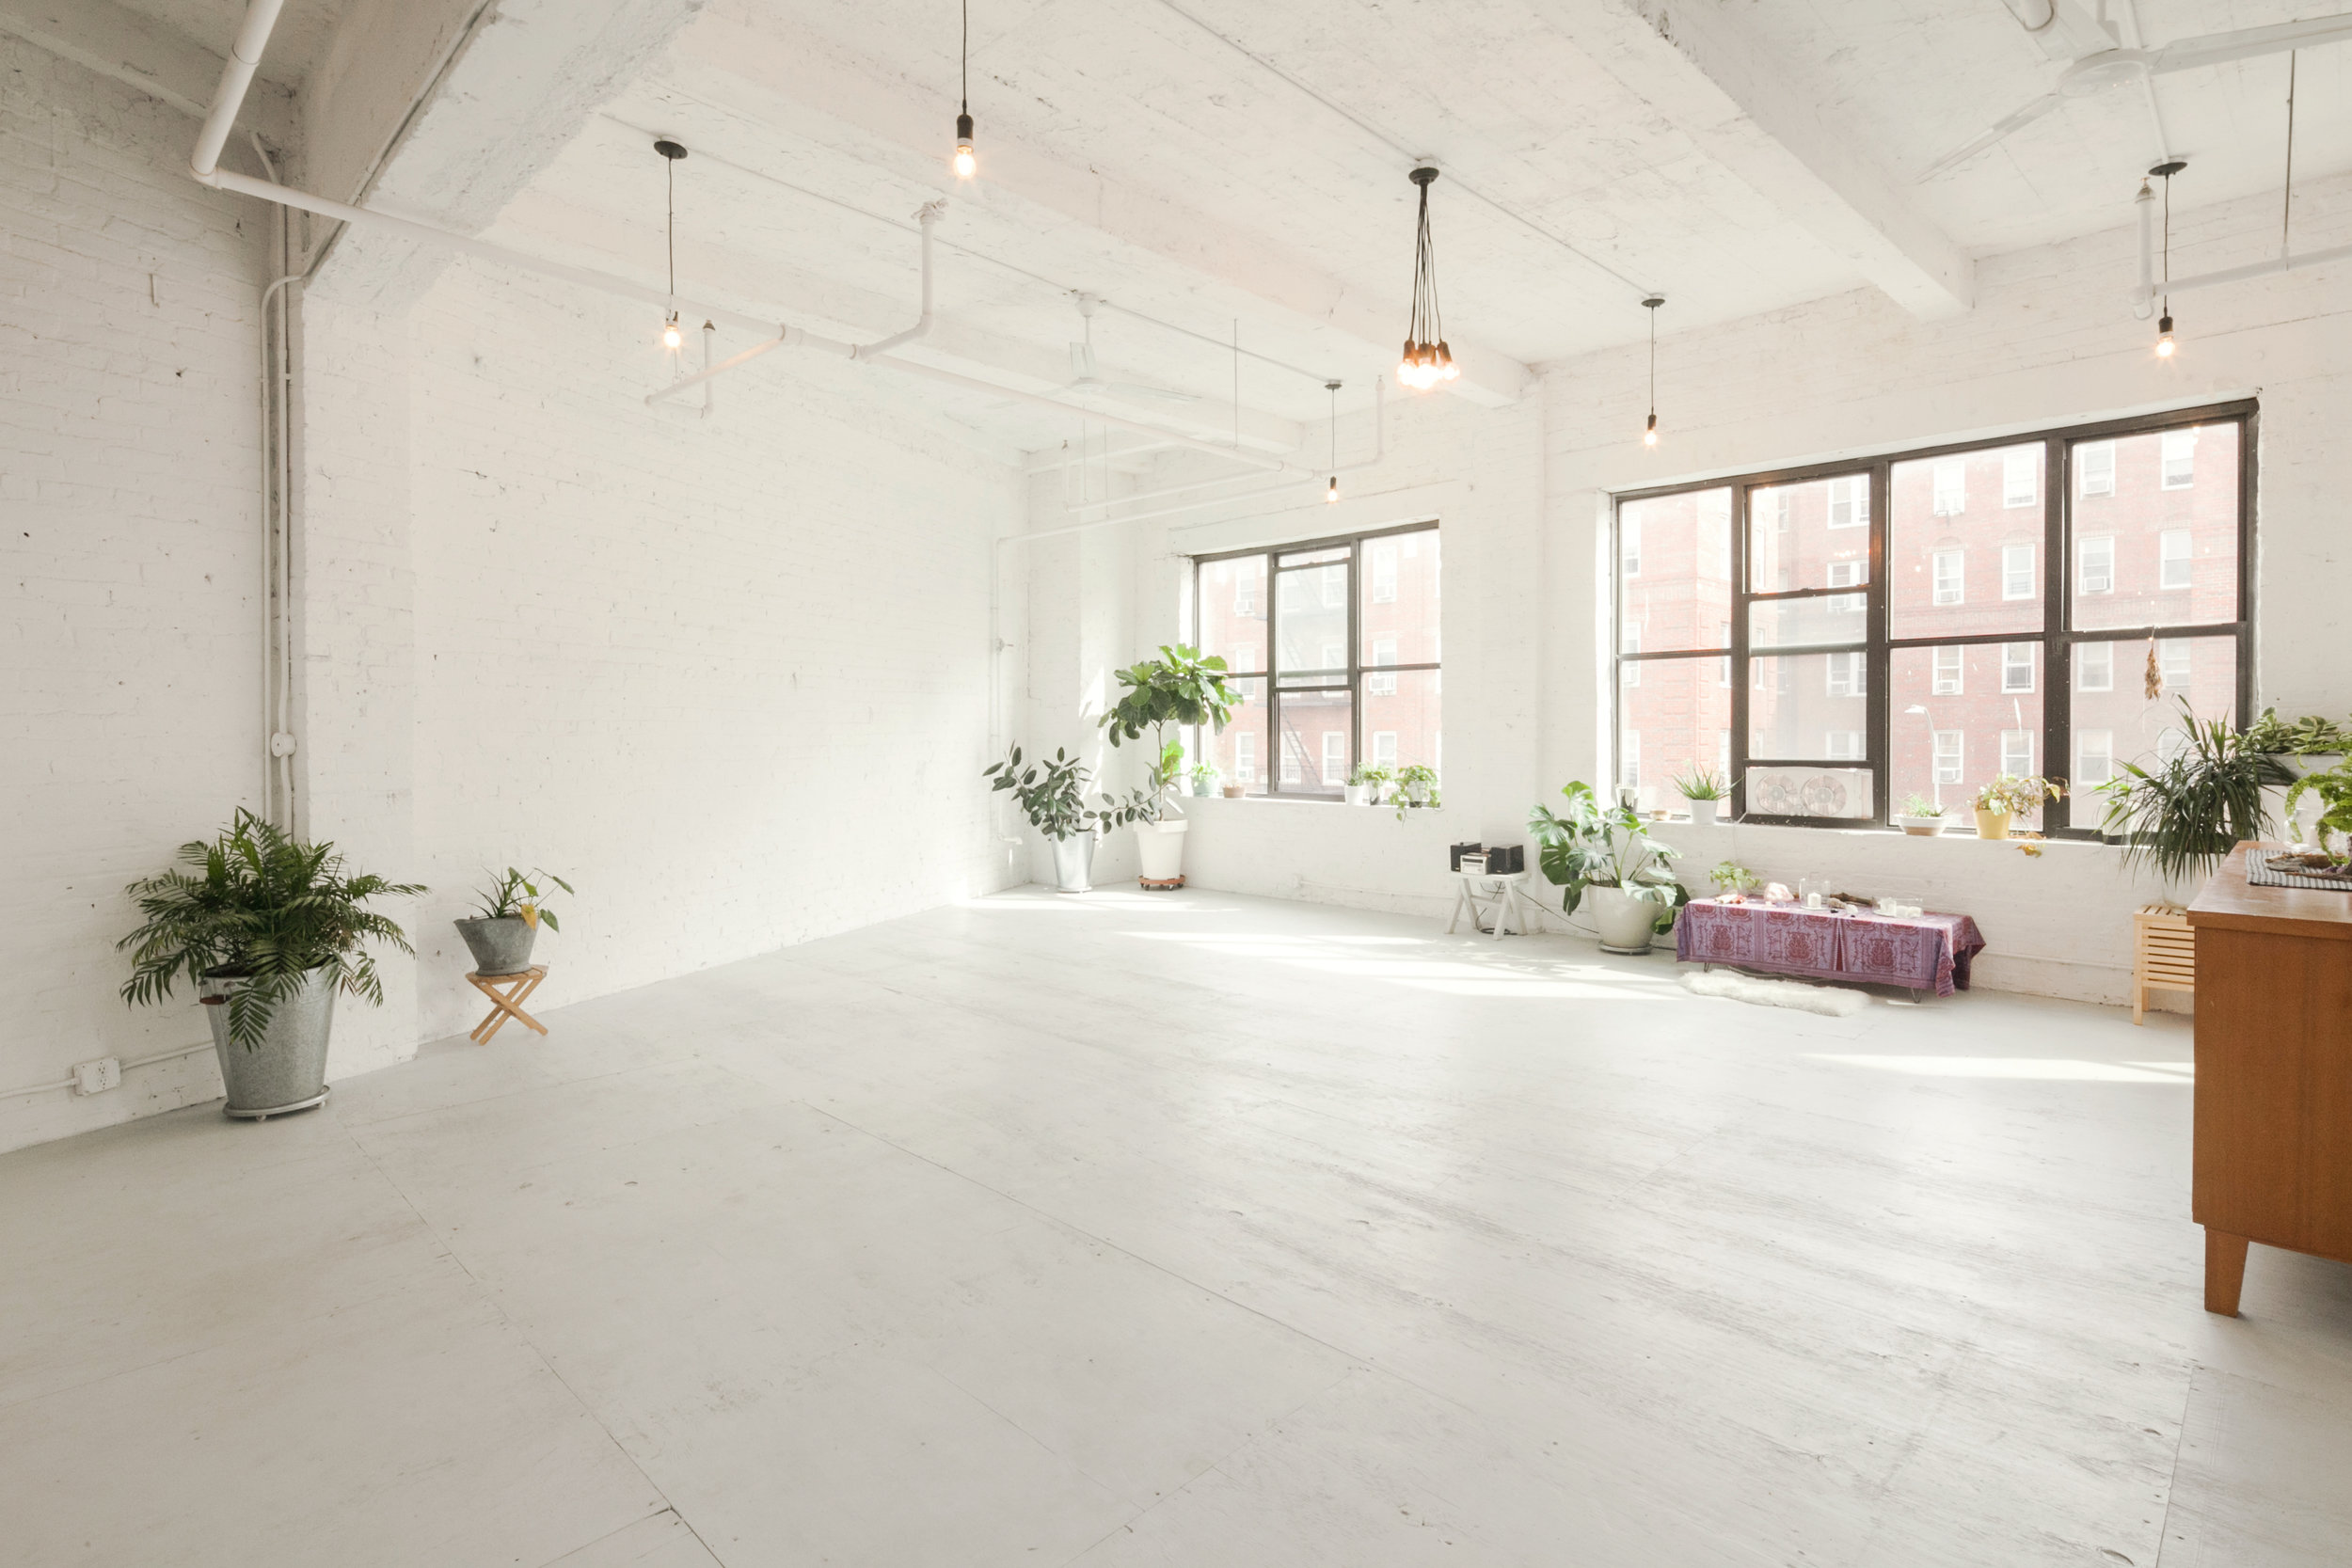 The space is filled with natural light all day, and various greenery is here to filter the air.